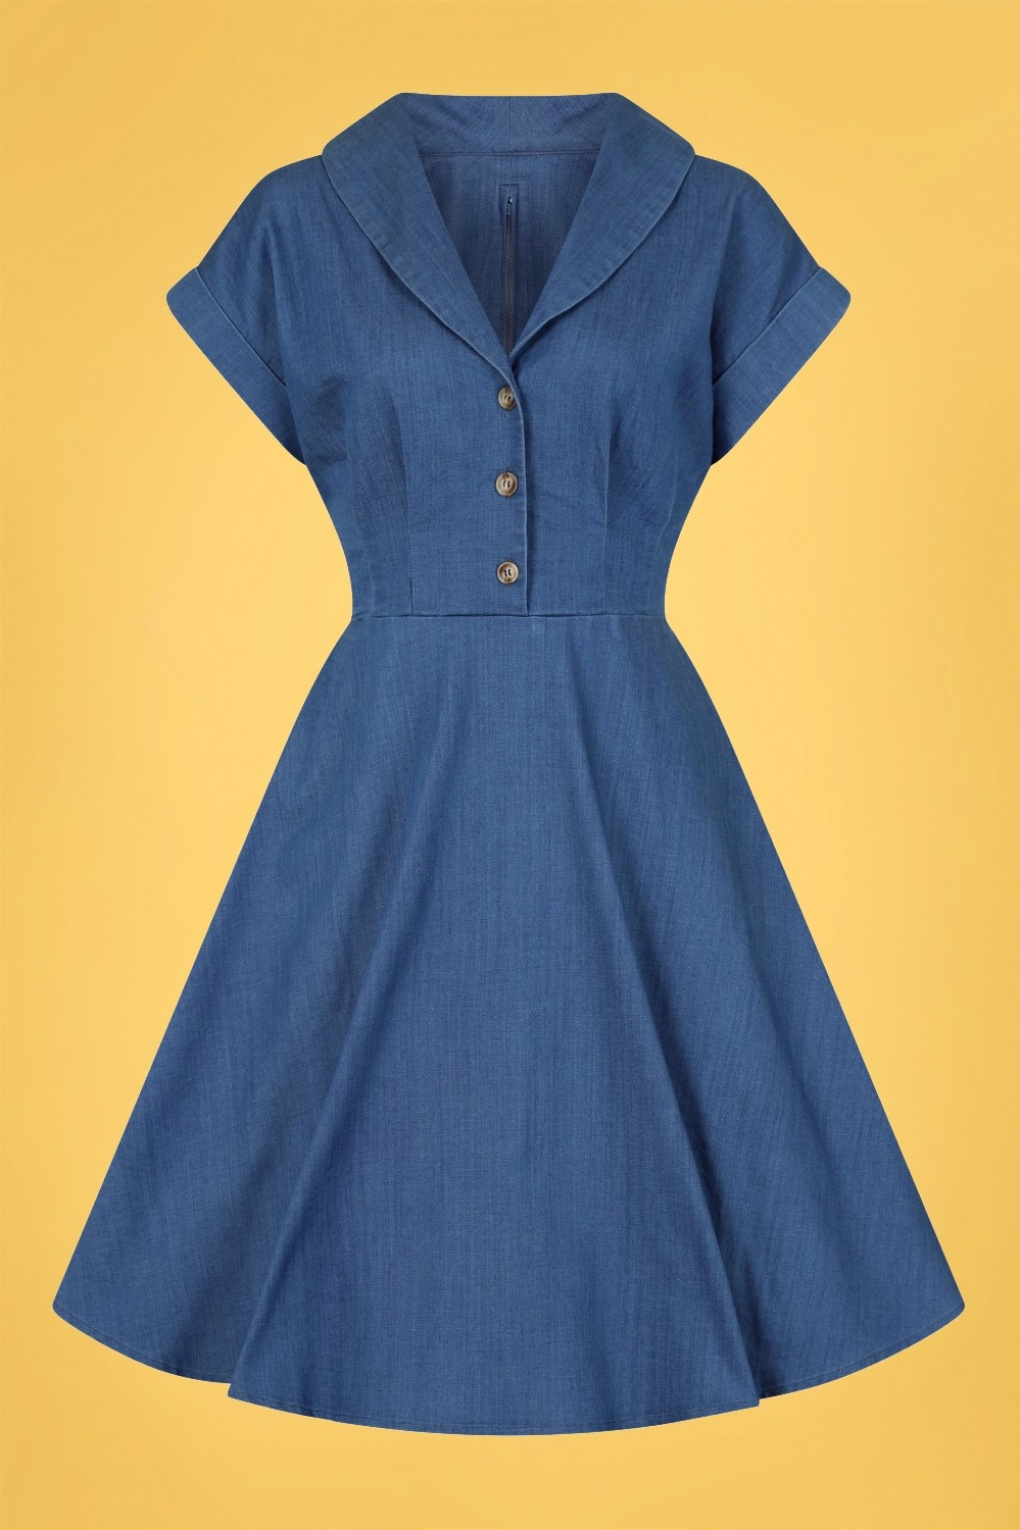 Vintage 50s Dresses: Best 1950s Dress Styles 50s Freddie Swing Dress in Denim Blue £52.29 AT vintagedancer.com